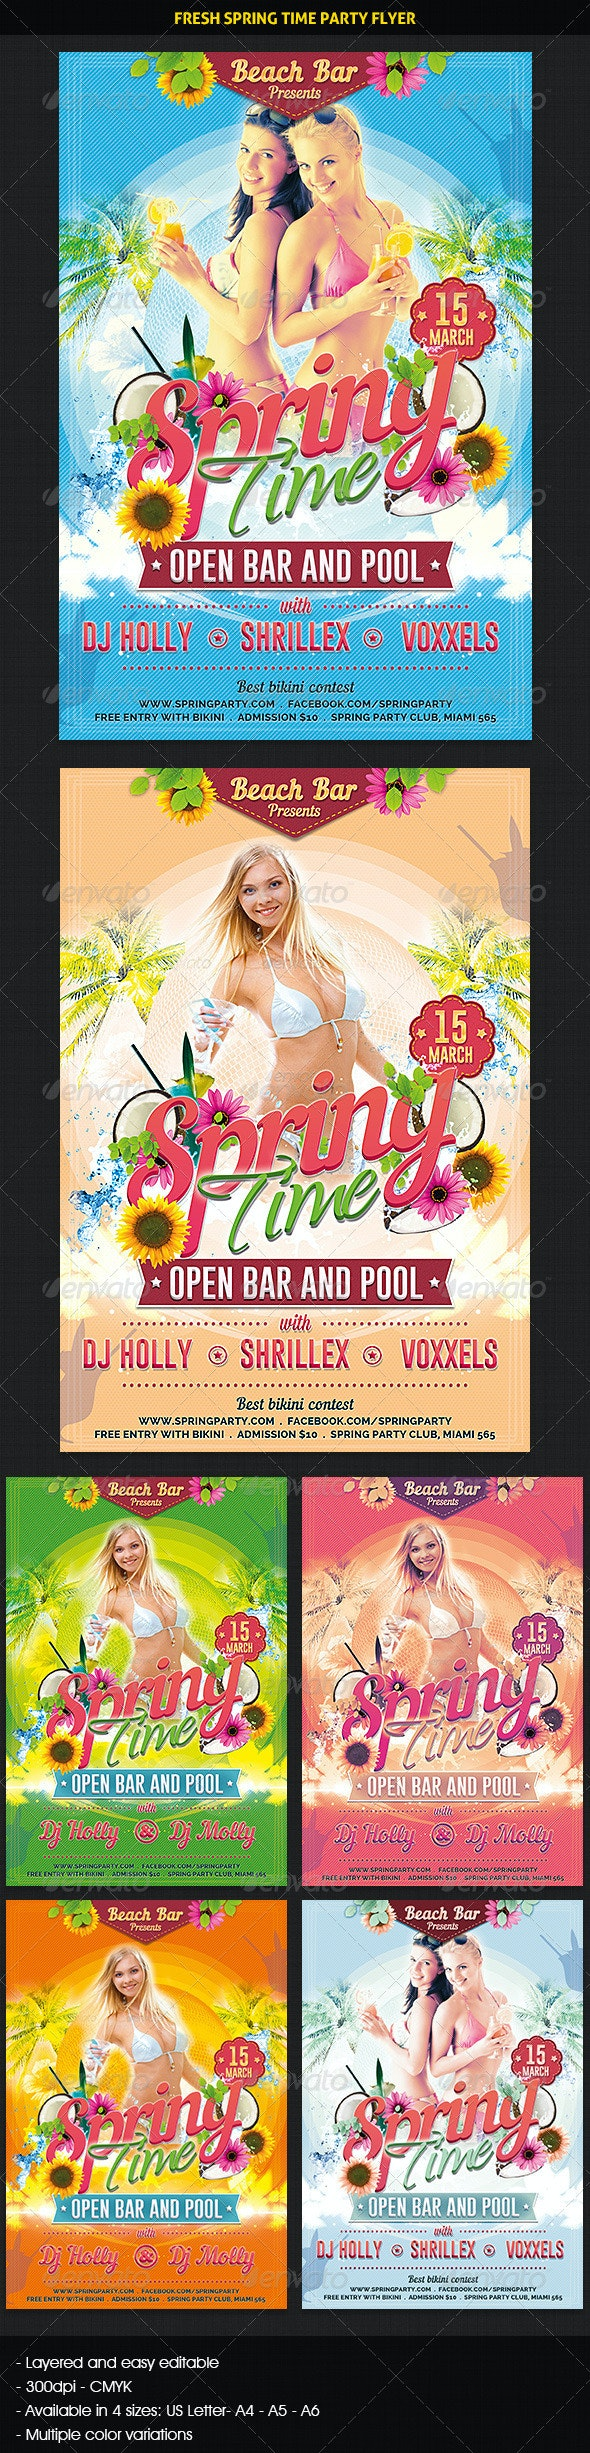 Fresh Spring Time Party Flyer - Clubs & Parties Events